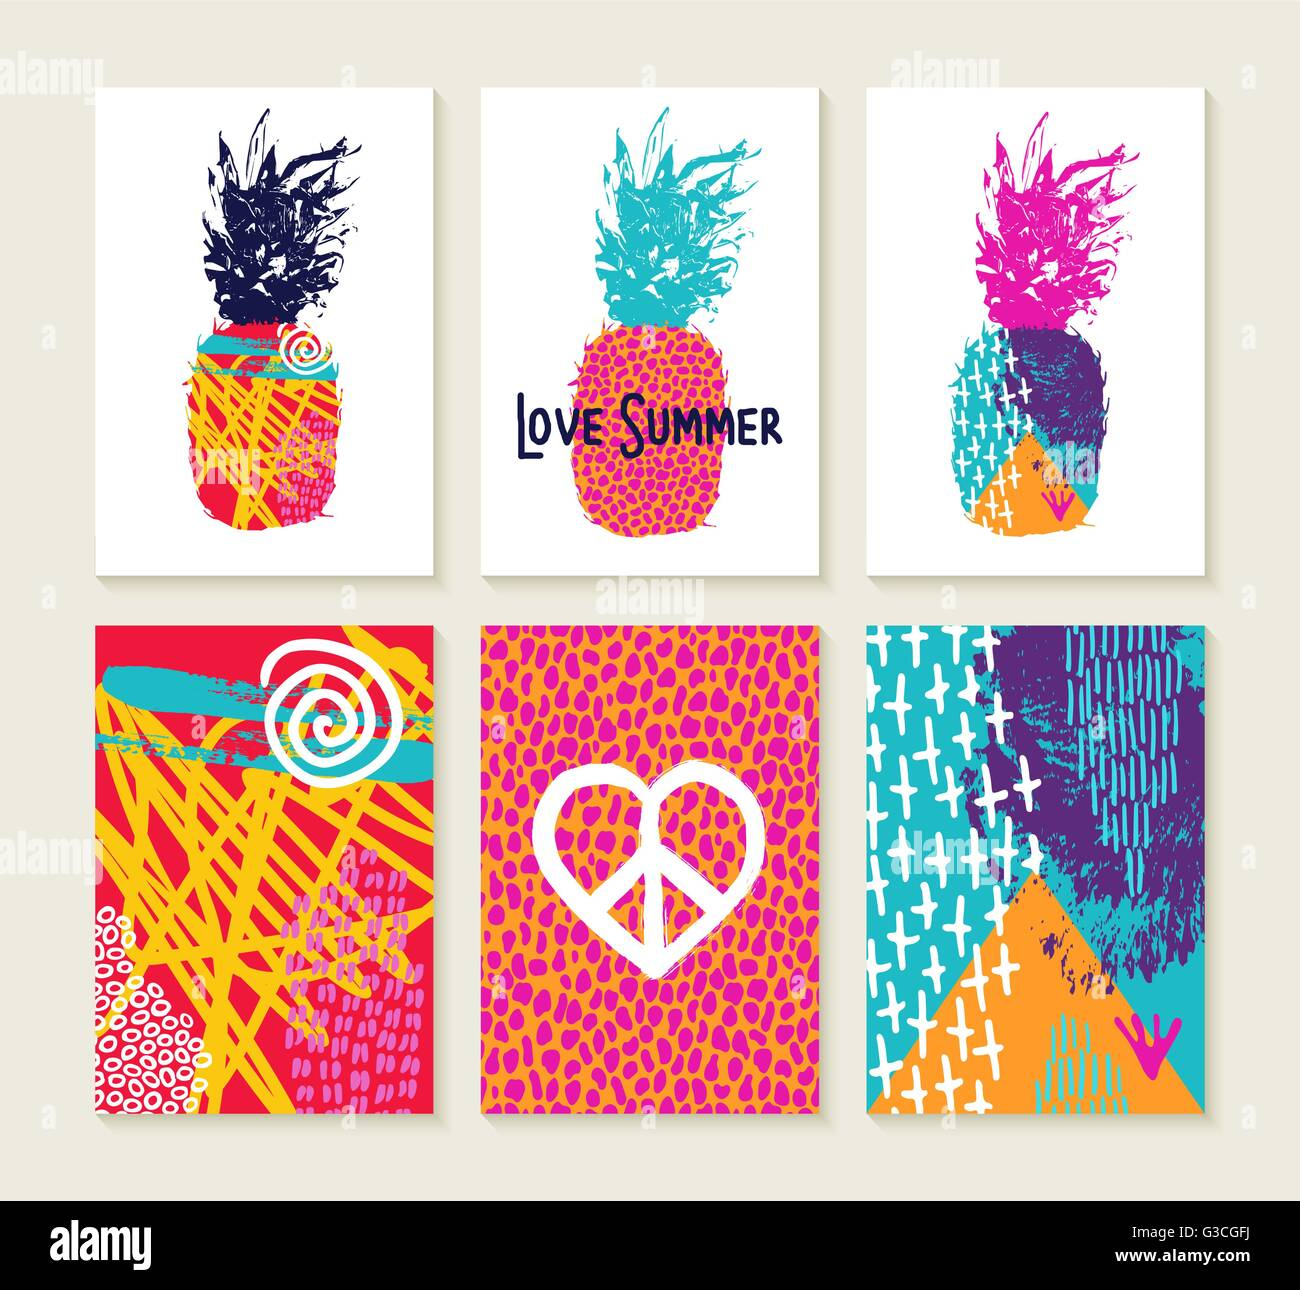 80s Designs set of happy colorful summer greeting card designs with 80s style